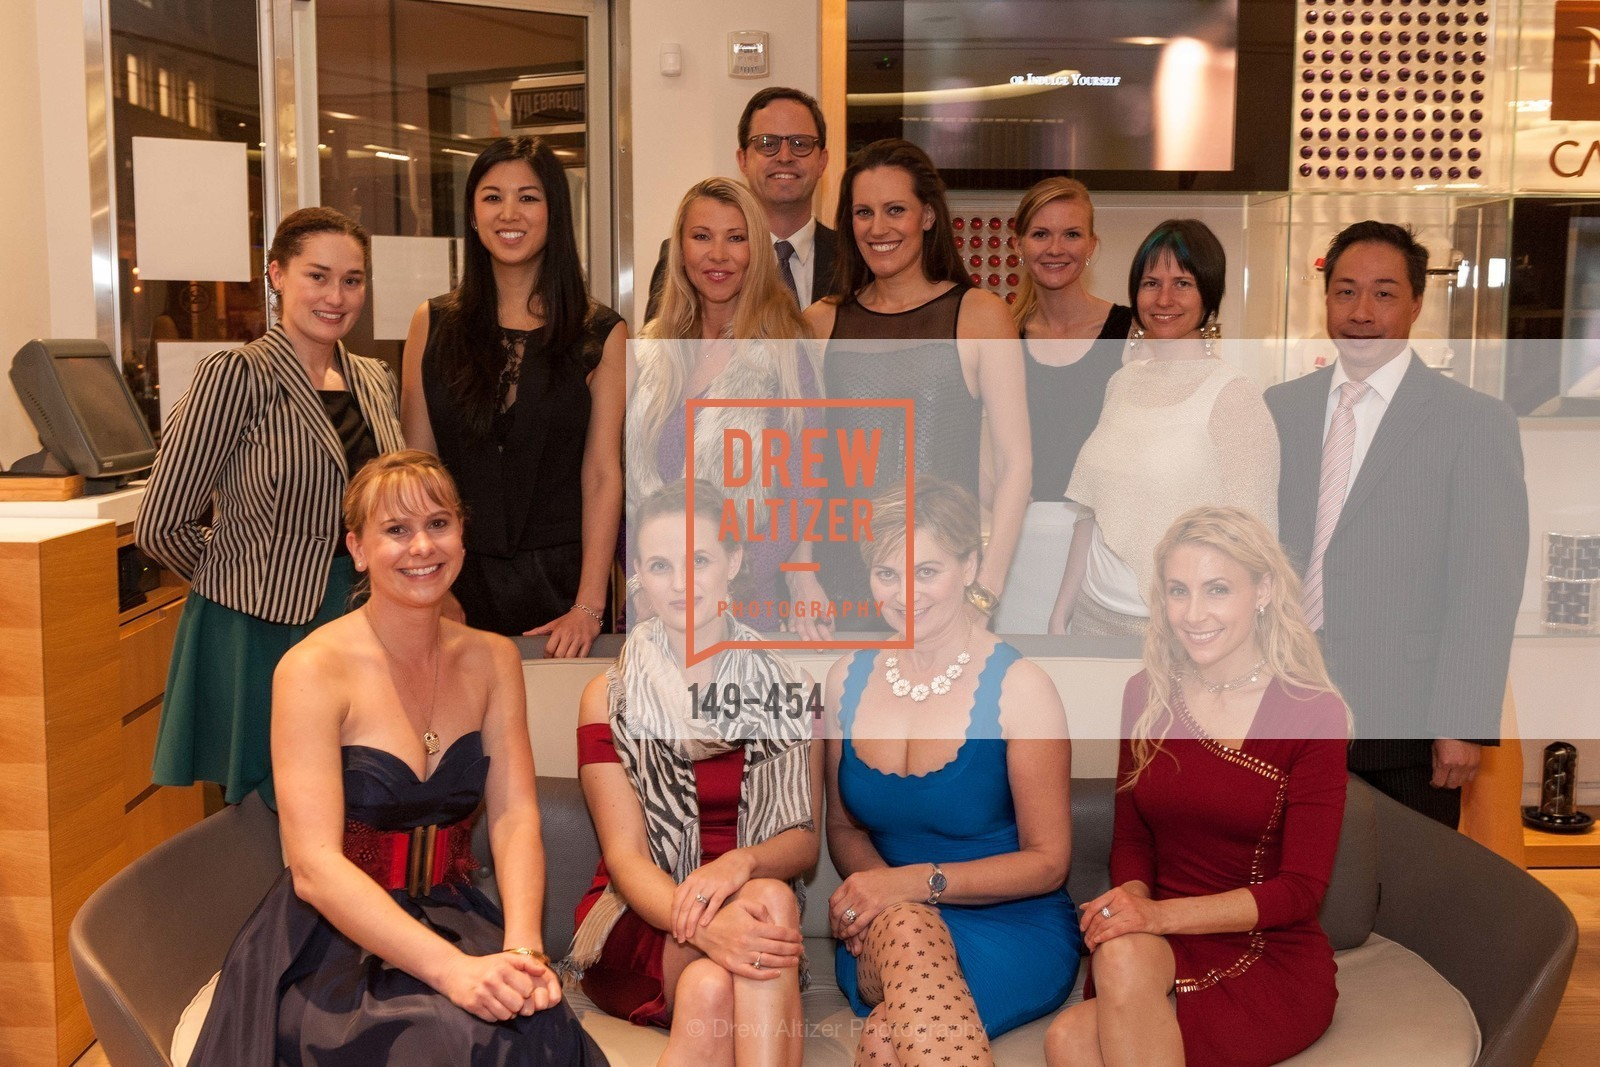 Bridget Dixon, Kelly Cramer, Emily Hu, Alyson Blume, Lena Gikkas, Justin Bank, Ashley Tudor, Jane Burkhard, Greer Goings, Joanna Winter, Robin Farmanfarmaian, Wilson Yan, 2014 SAN FRANCISCO BALLET ENCORE! Kick-Off Party, US. Nespresso Boutique Bar, 90 Grant Avenue, January 7th, 2014,Drew Altizer, Drew Altizer Photography, full-service agency, private events, San Francisco photographer, photographer california